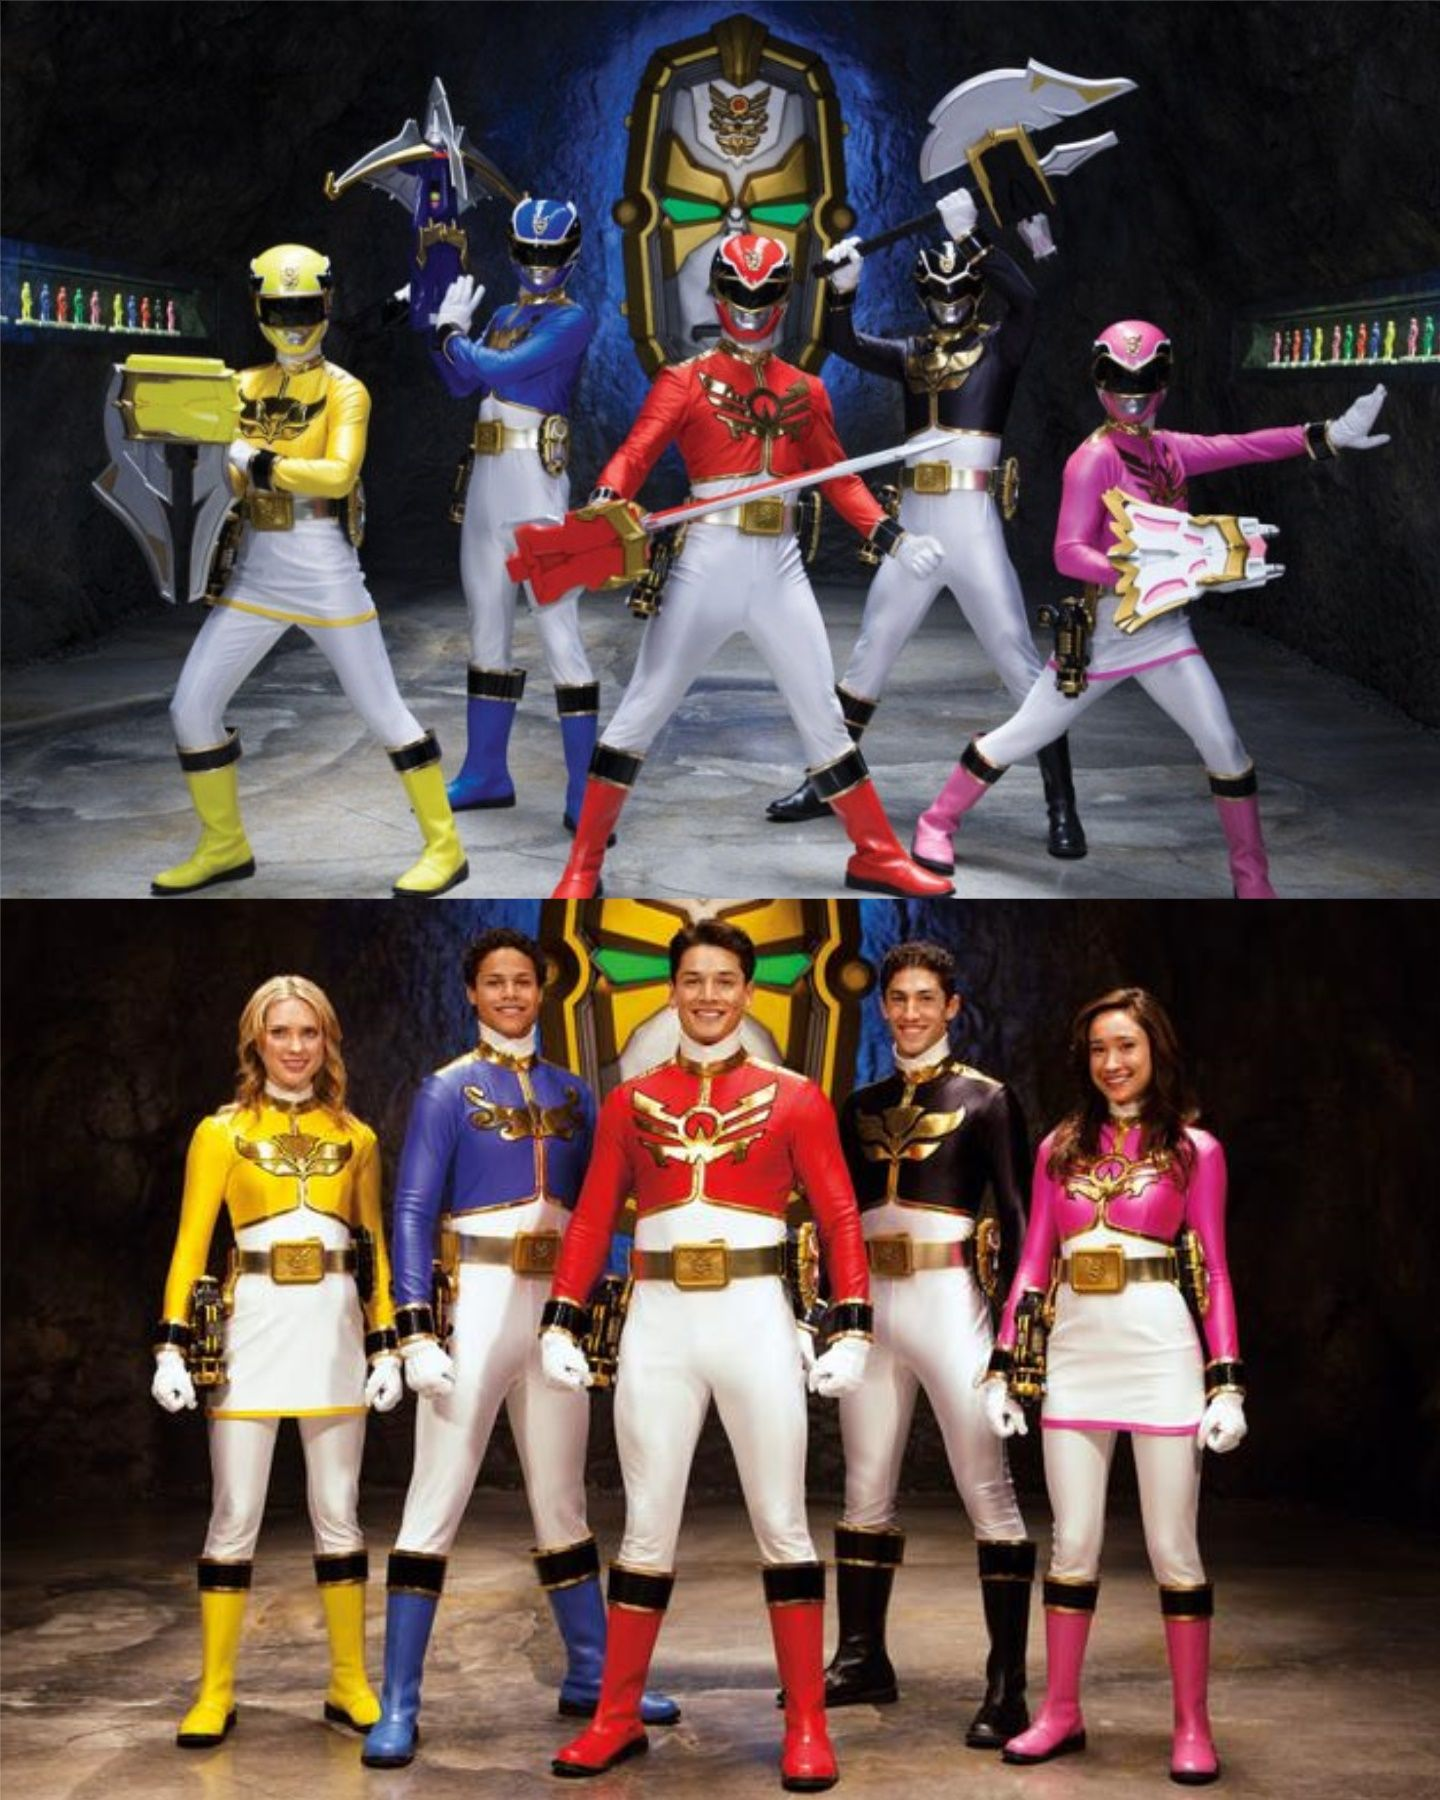 Pin by Tara Phan on POWER RANGERS | Power rangers megaforce